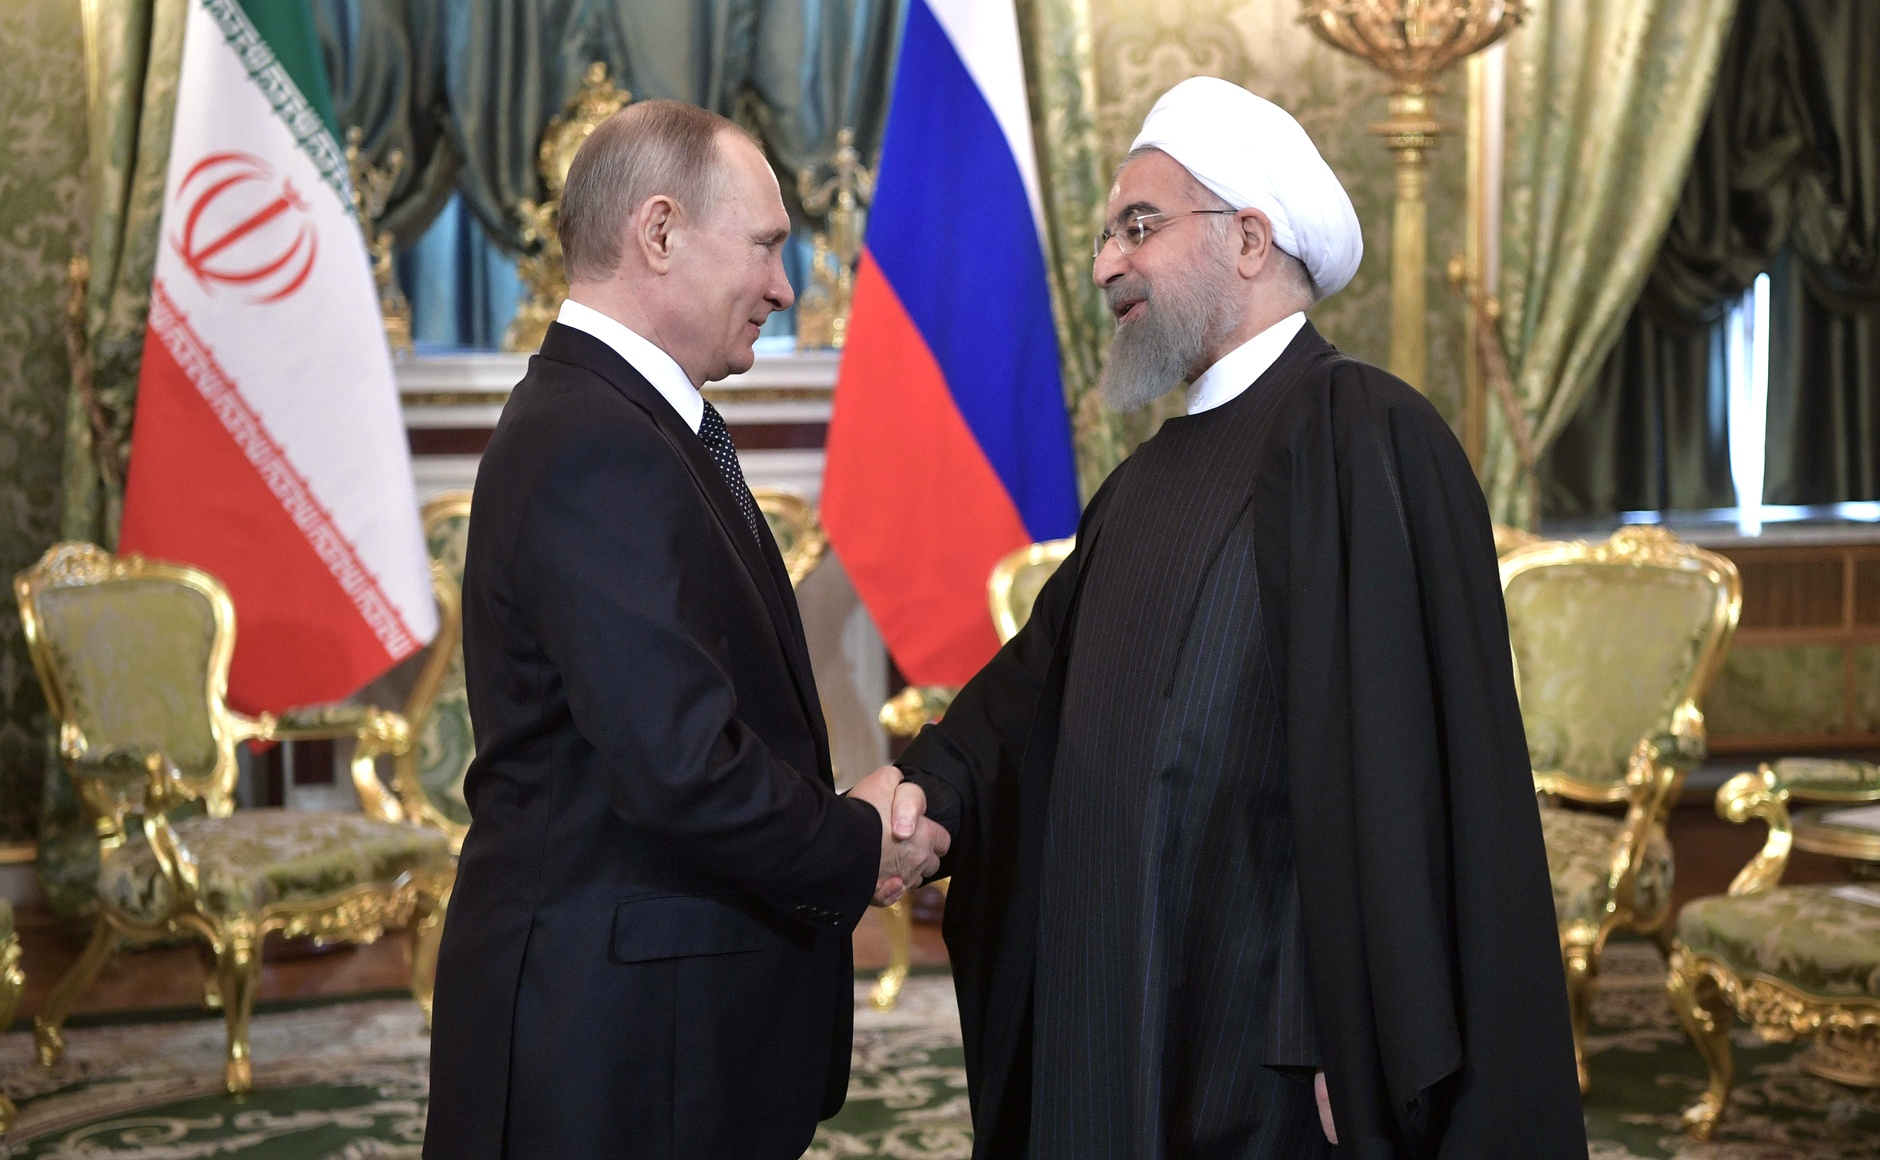 Russian President Vladimir Putin and Iranian President Hassan Rouhani meet in Moscow, on March 28, 2017.